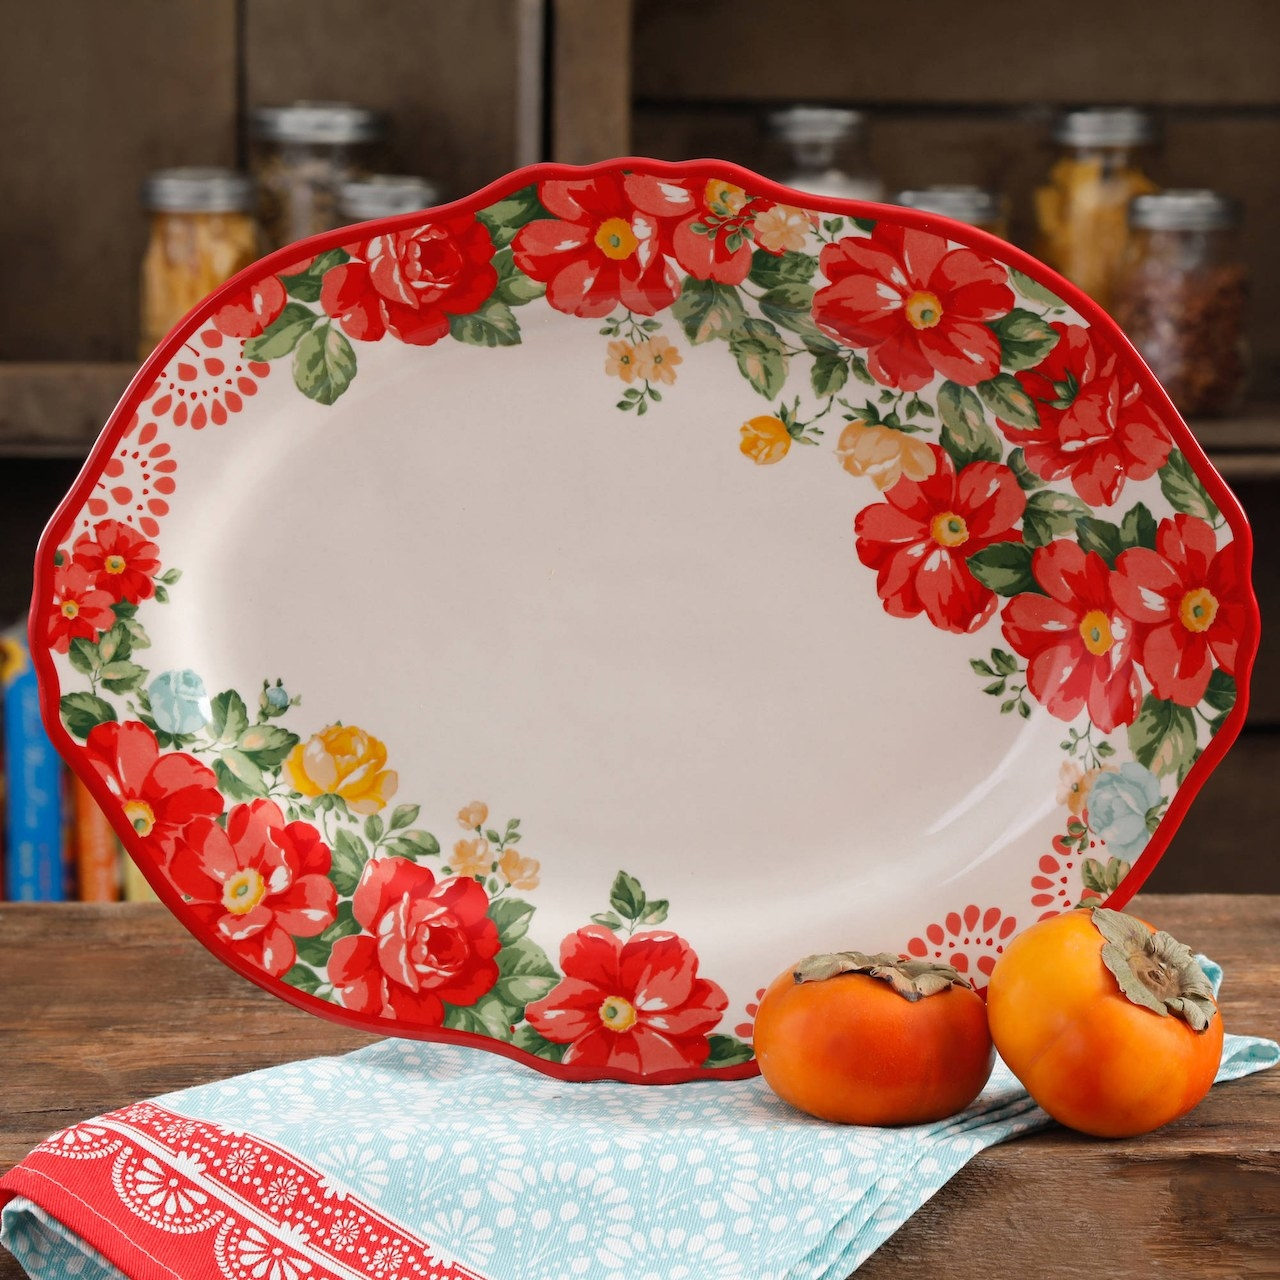 The oval platter with a red floral print around the edges